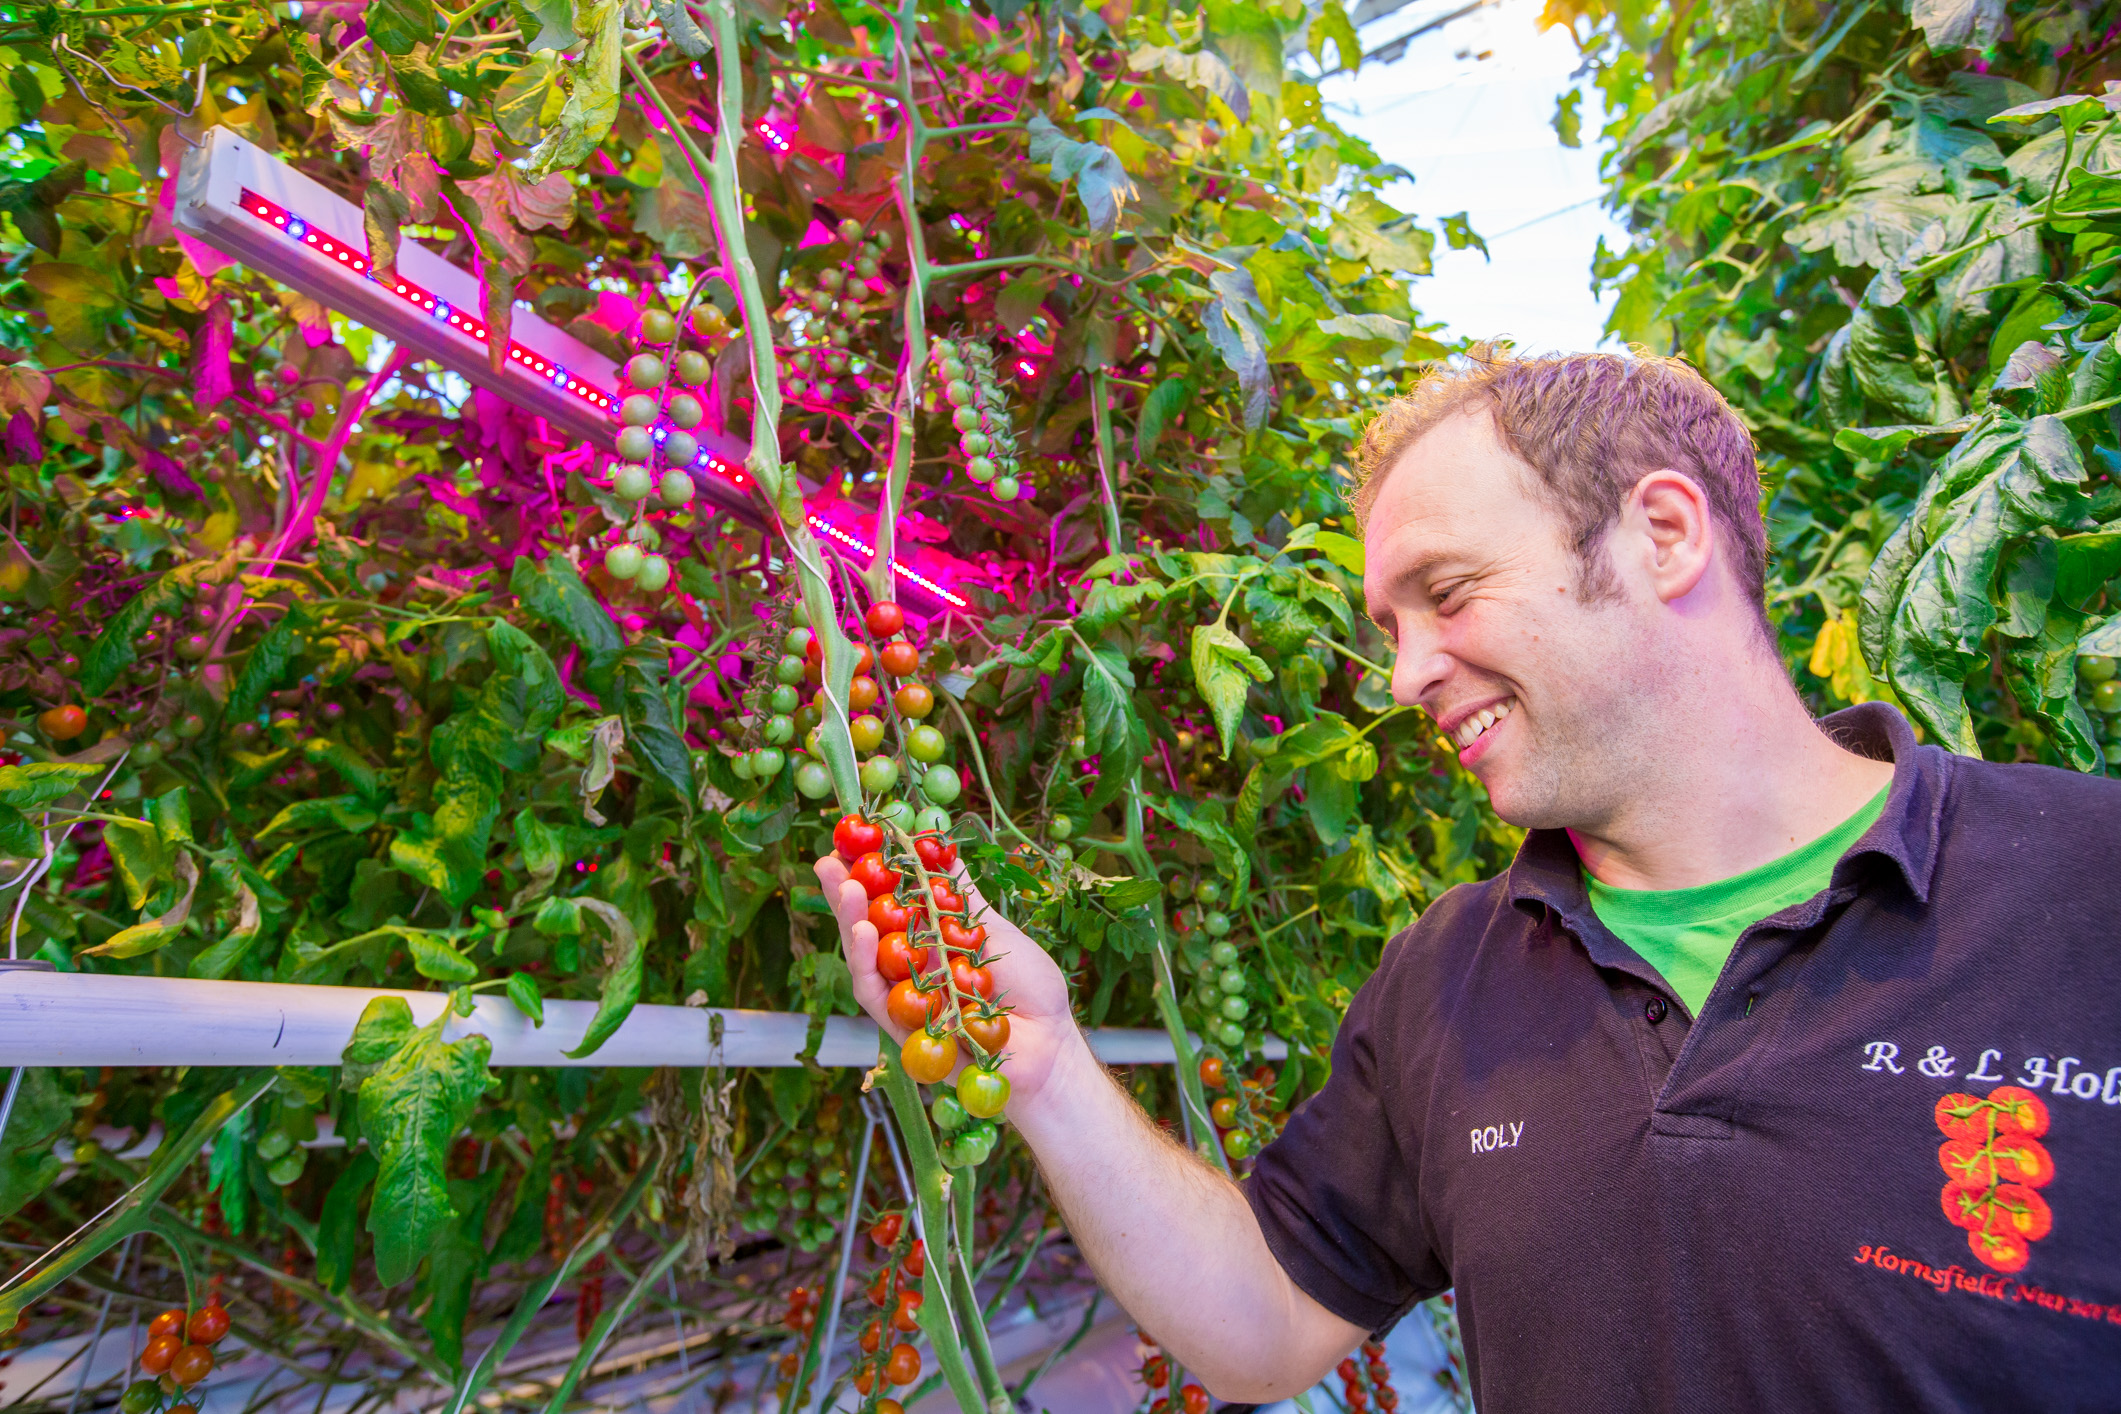 Evesham Vale Growers and R & L Holt increase marketable yield by 25% using Signify's hybrid lighting system